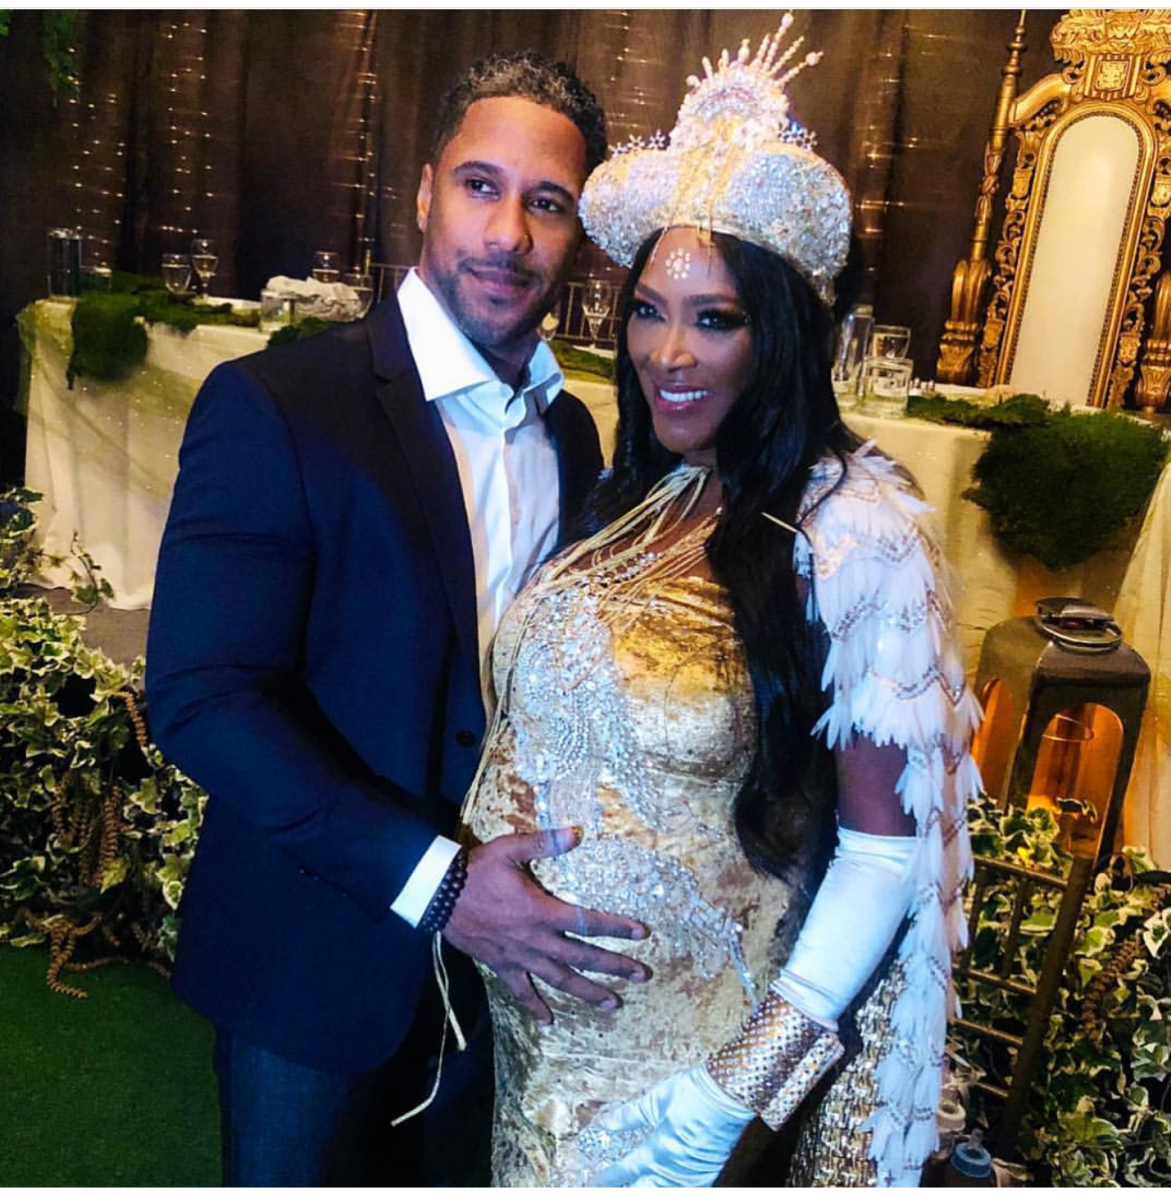 #RHOA NEWS: Go Inside #KenyaMoore's FAIRYTALE Baby Shower! [Pics]